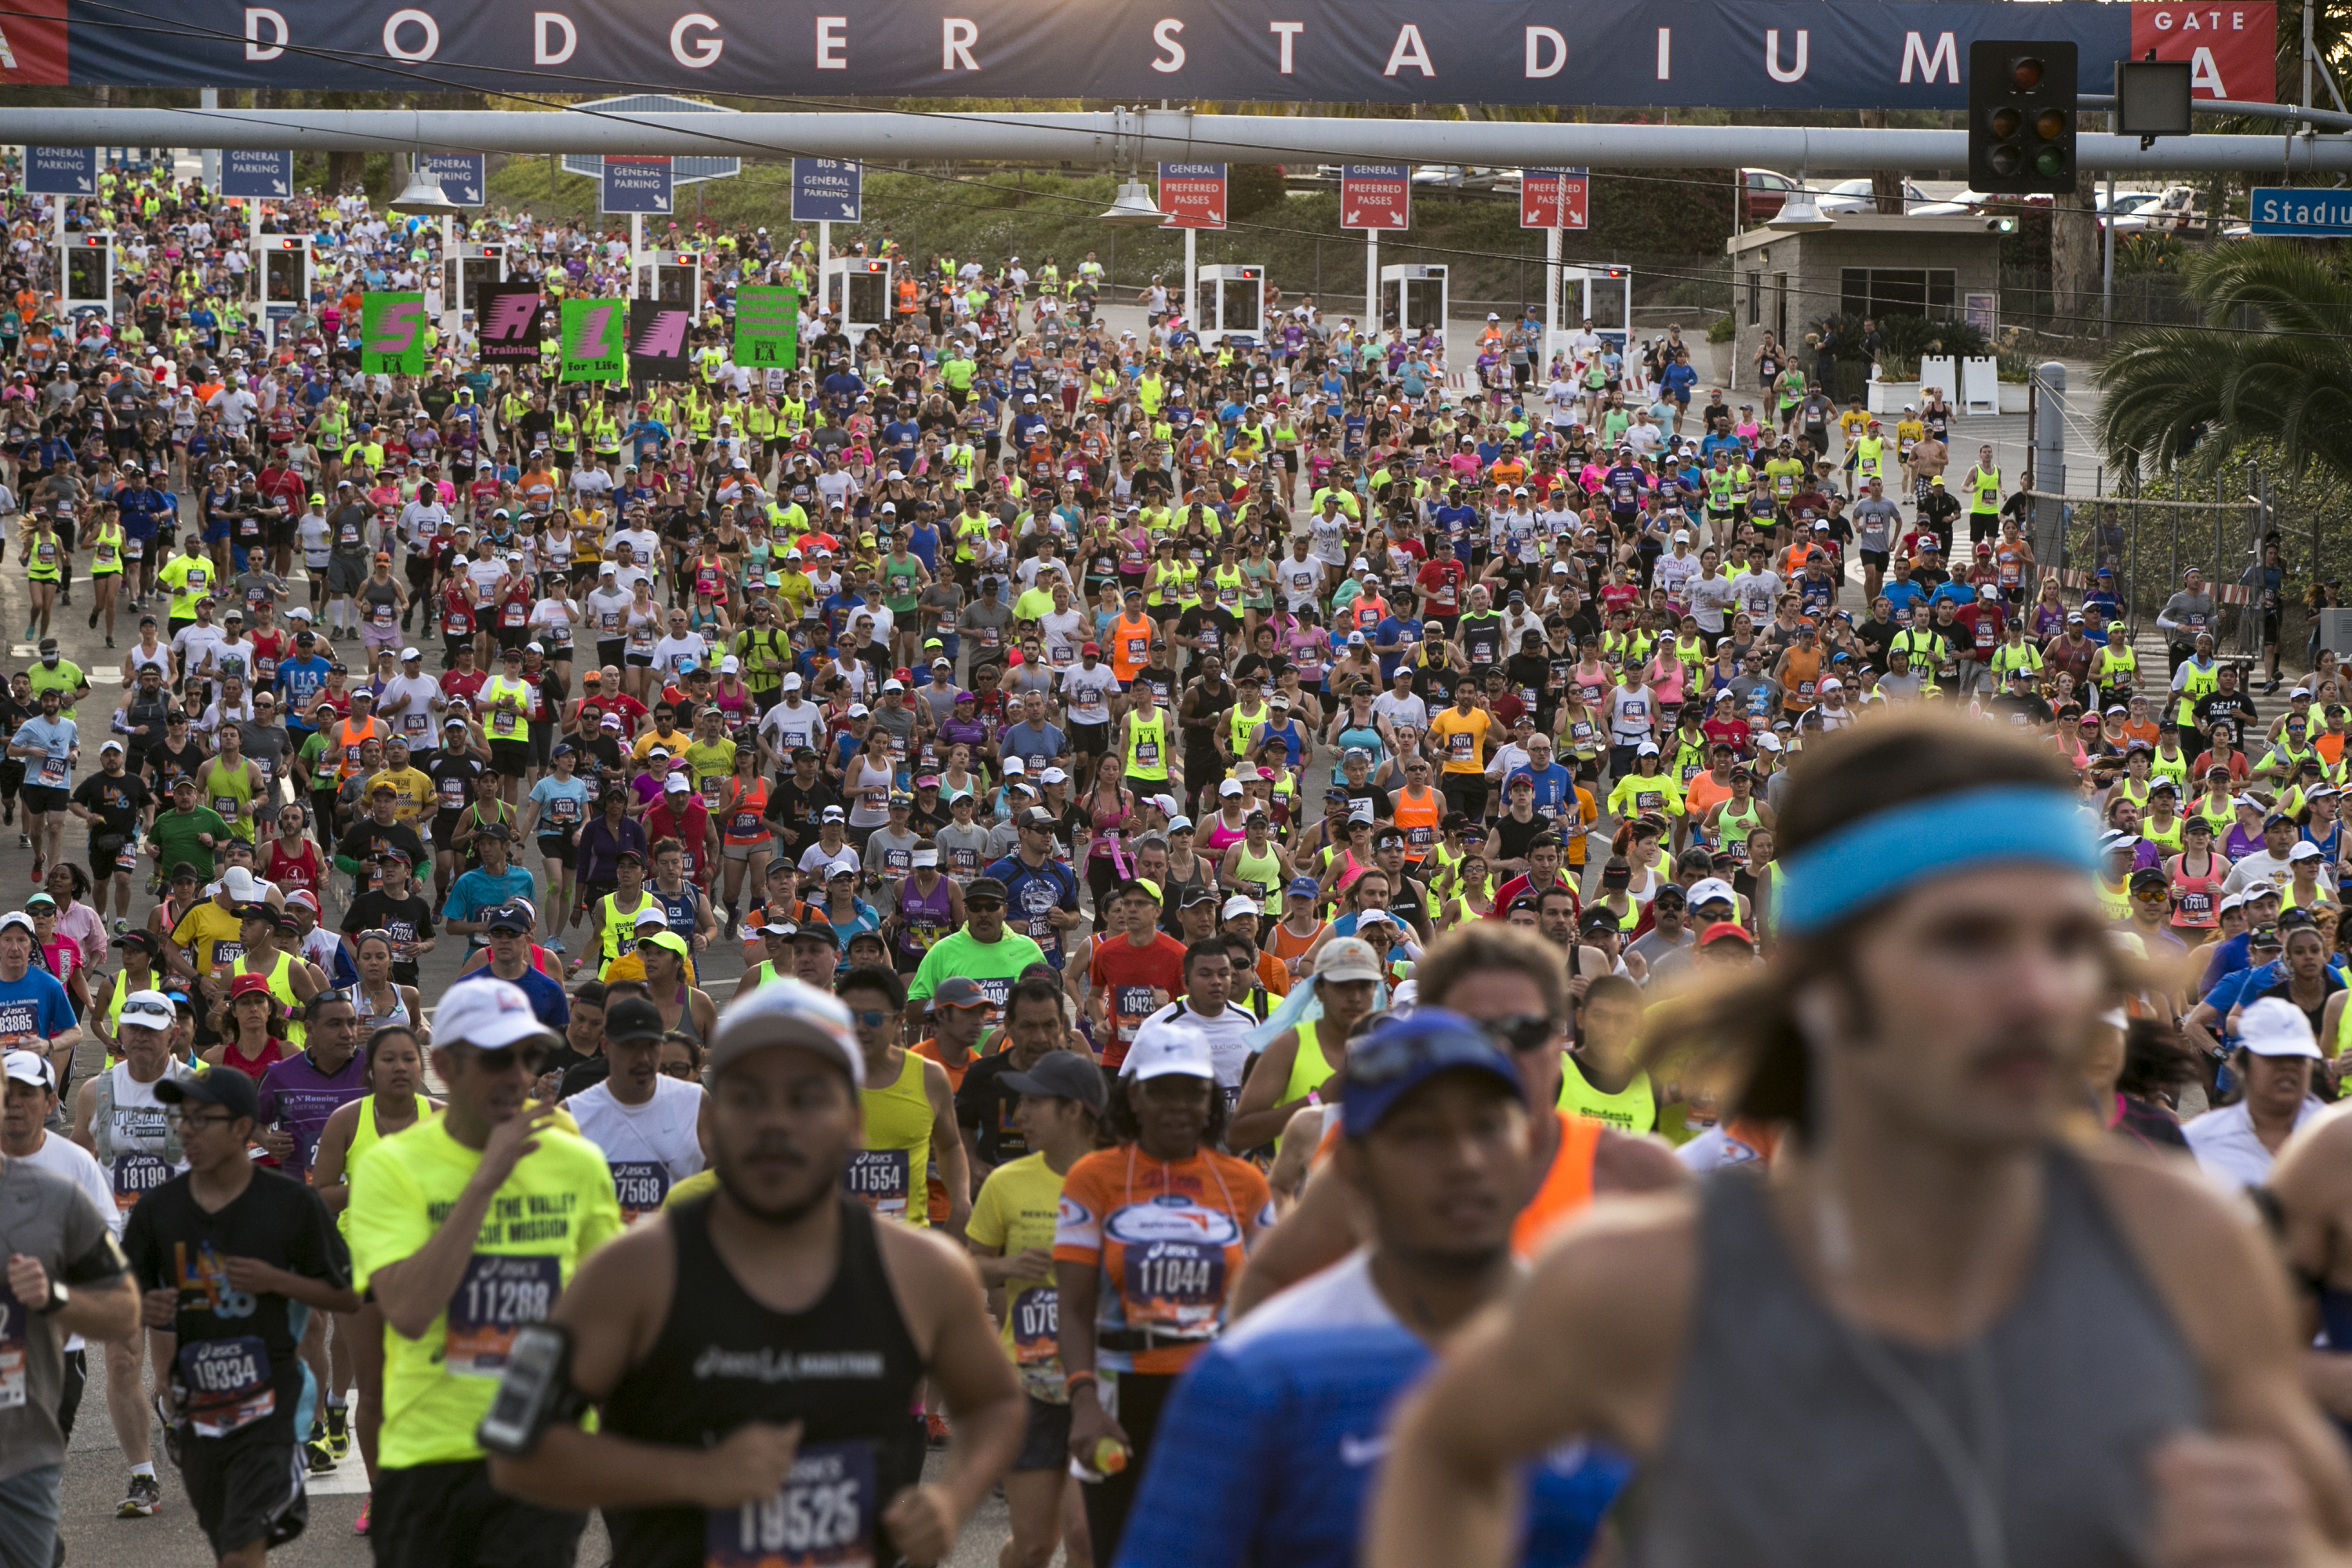 Runners in the 30th Los Angeles Marathon take off from Dodger Stadium in Los Angeles Sunday, March 15, 2015.